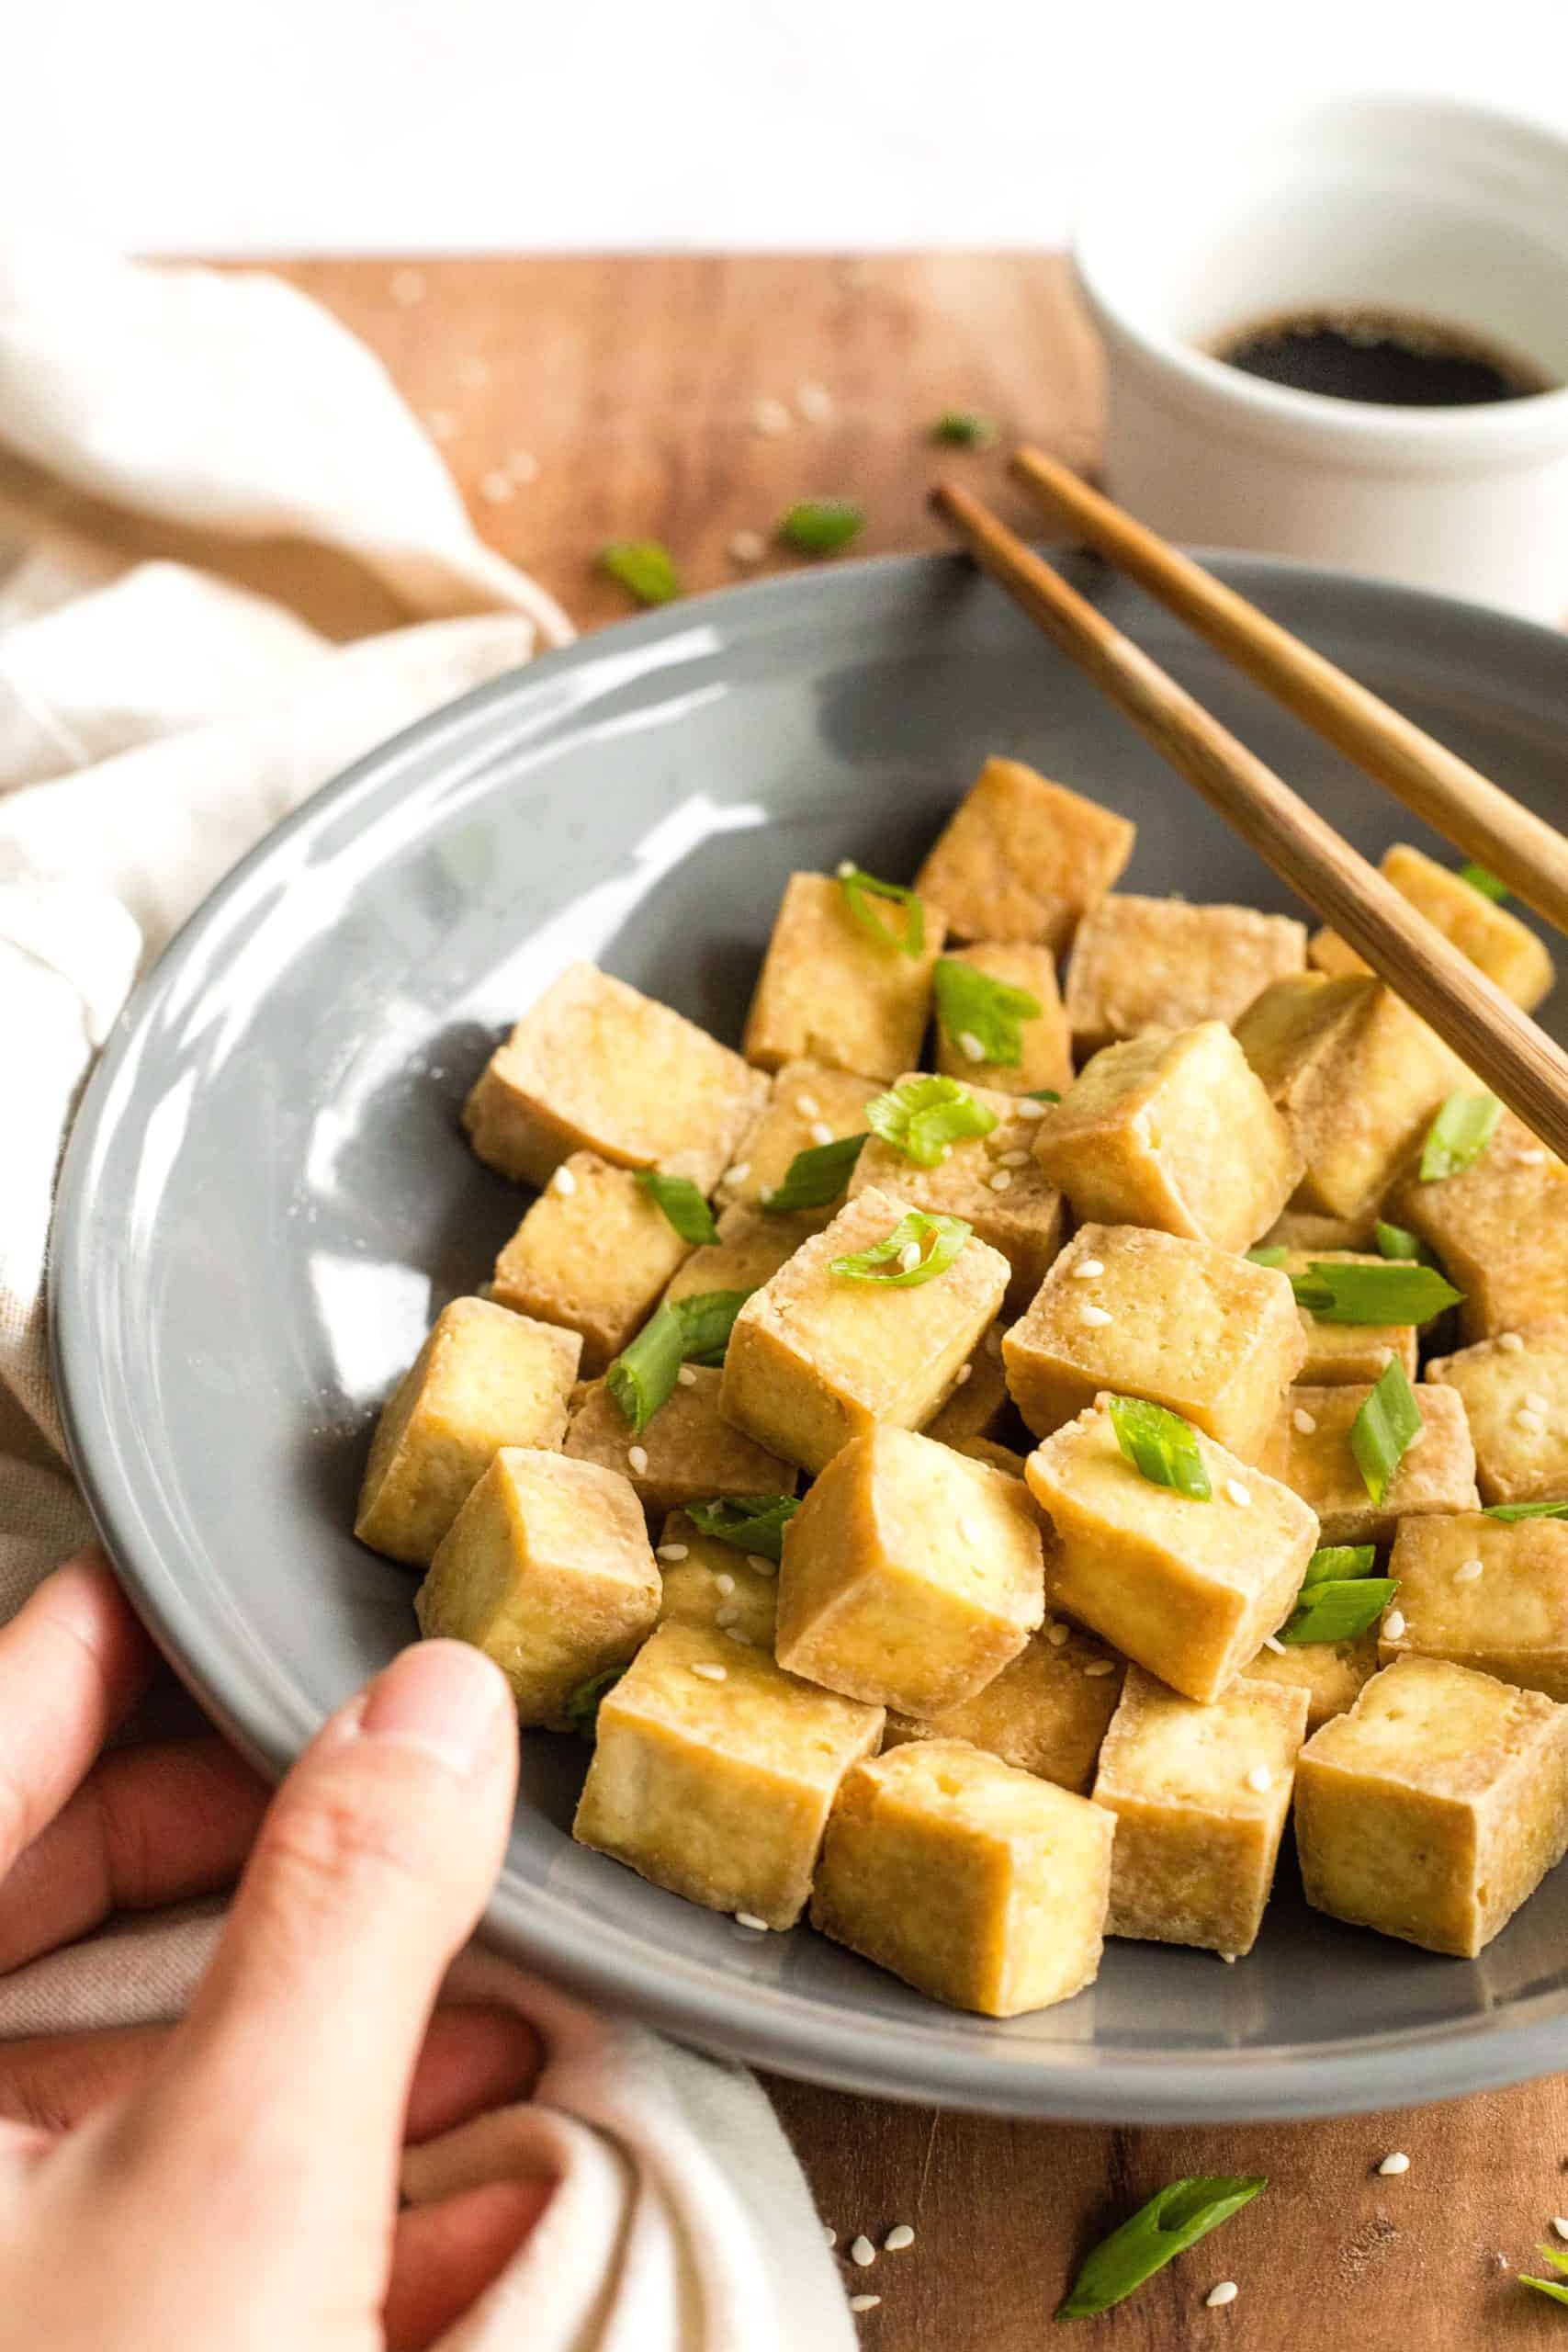 Hand holding a grey bowl of crispy air fryer tofu cubes.